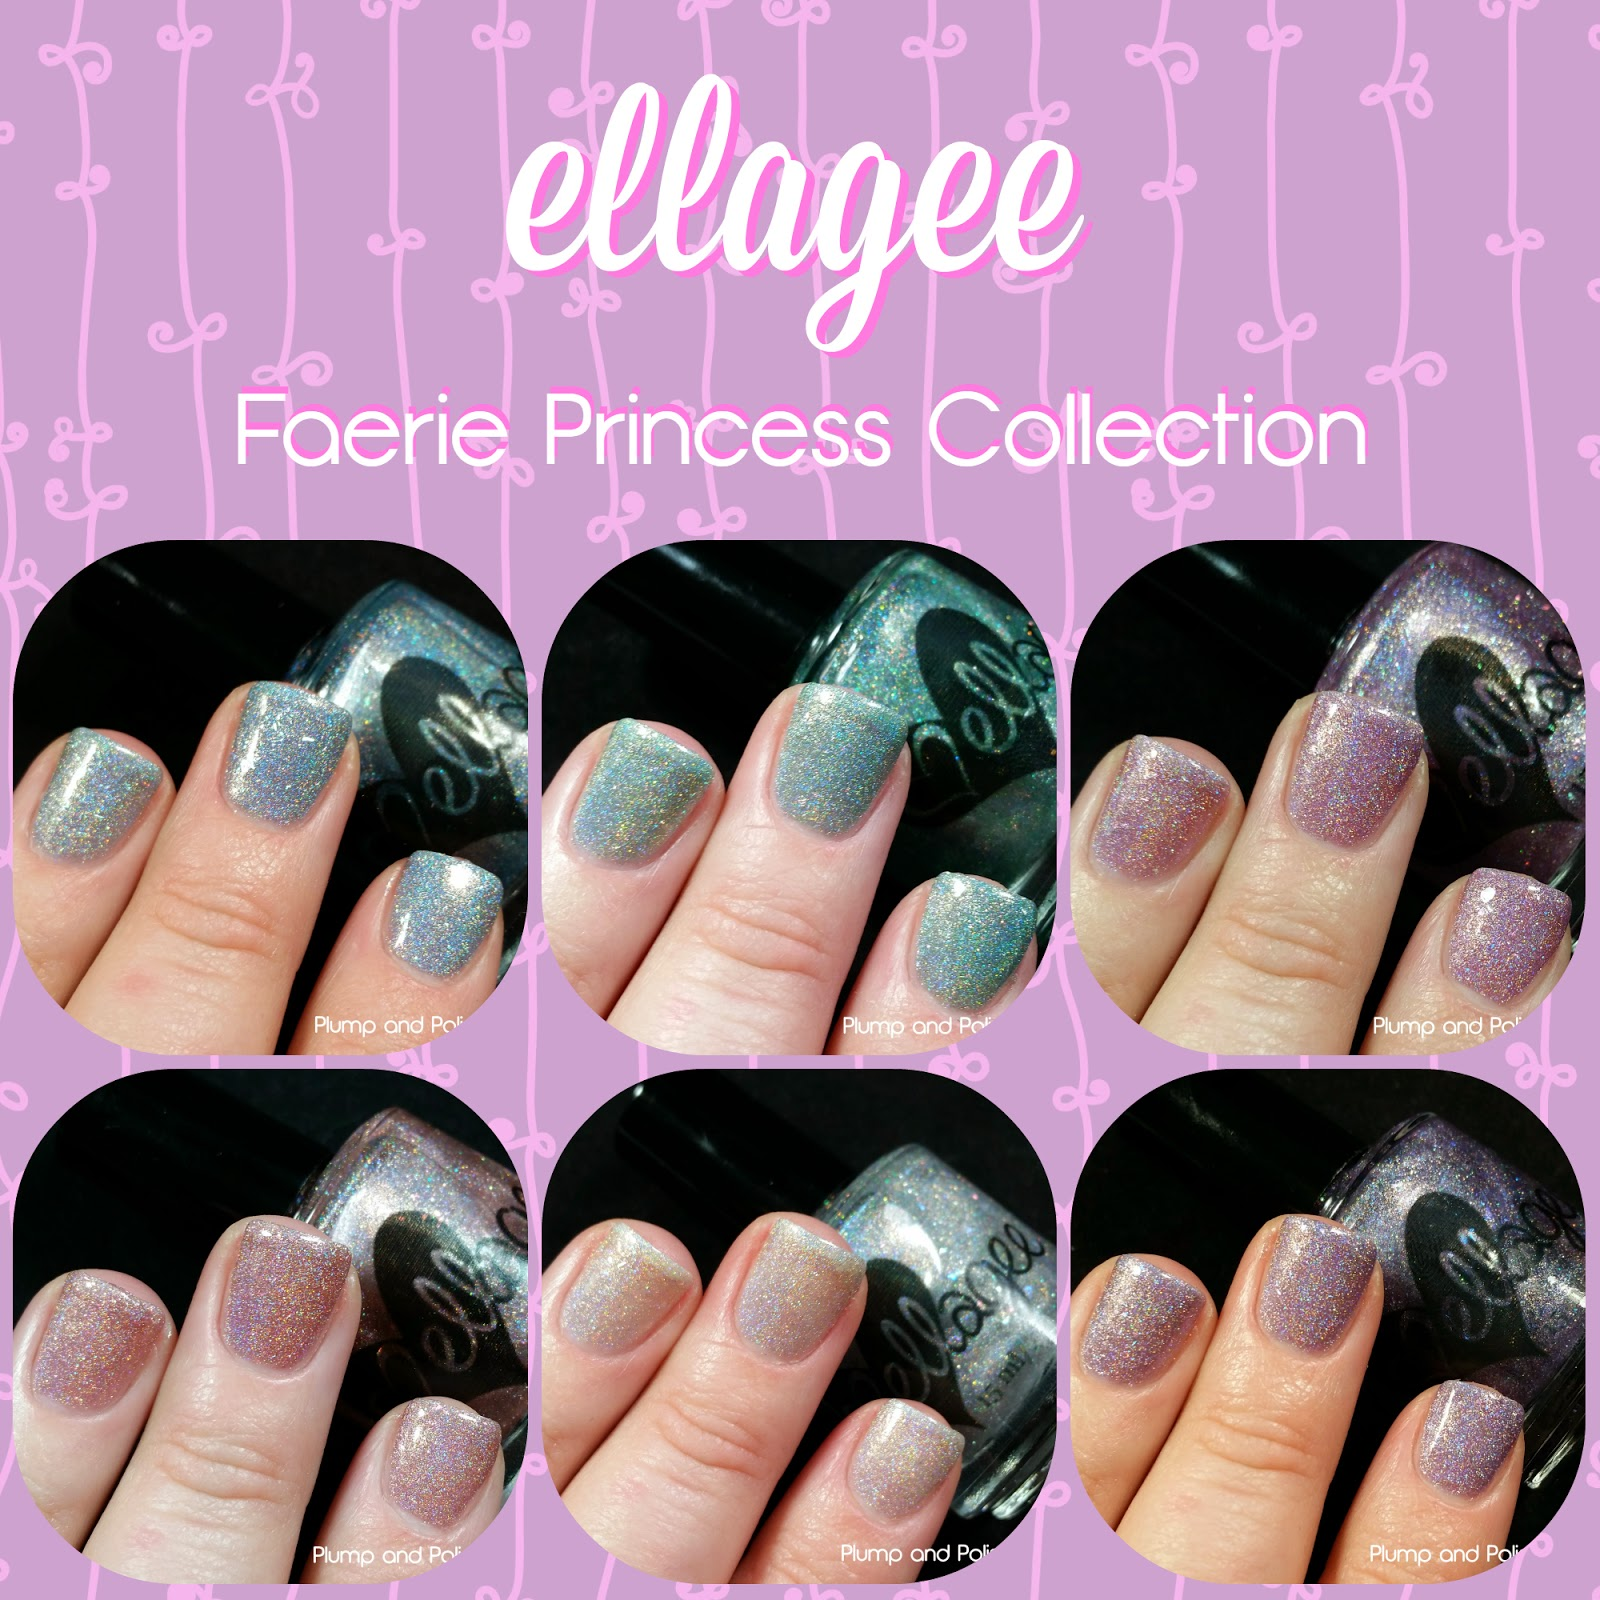 ellagee - Faerie Princess Collection